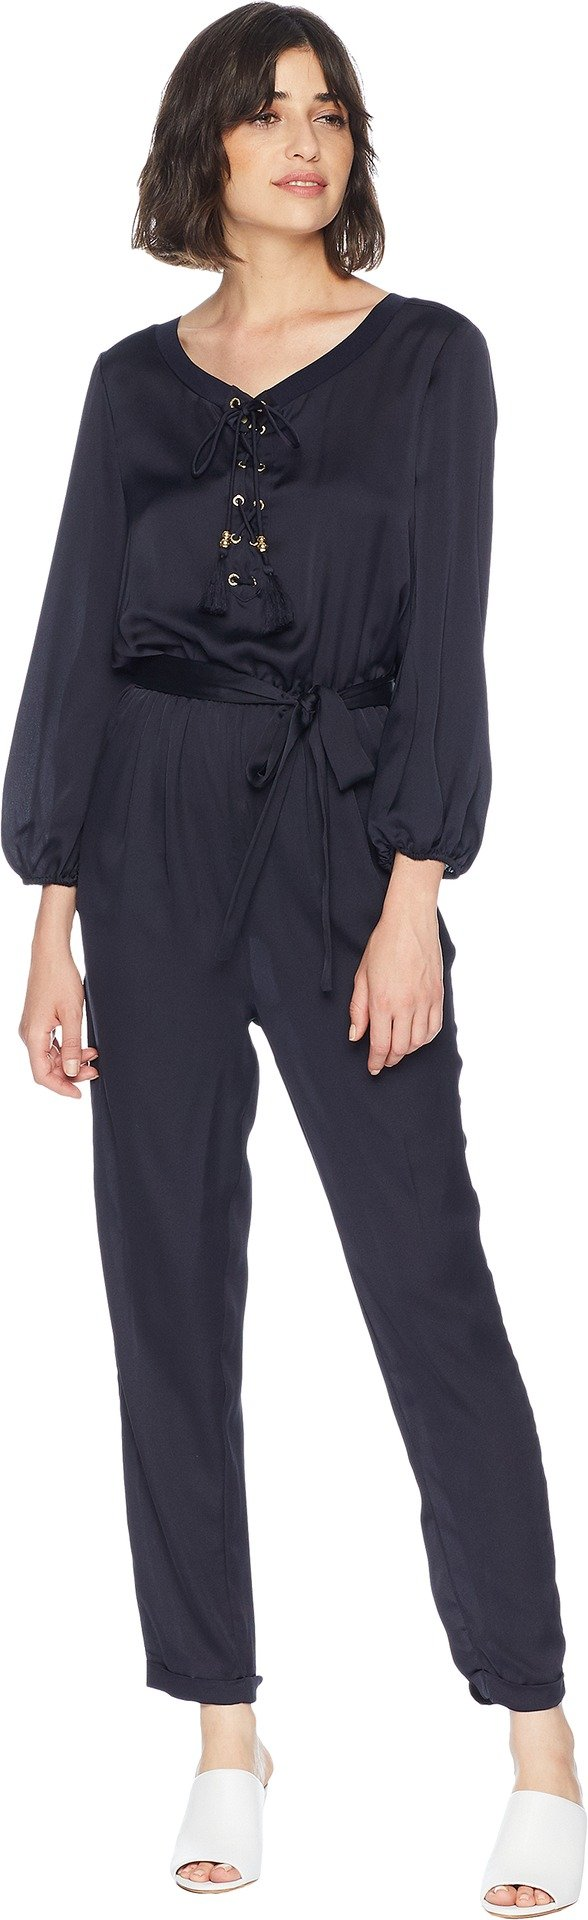 Juicy Couture Black Label Womens Satin Pleated Jumpsuit Navy M